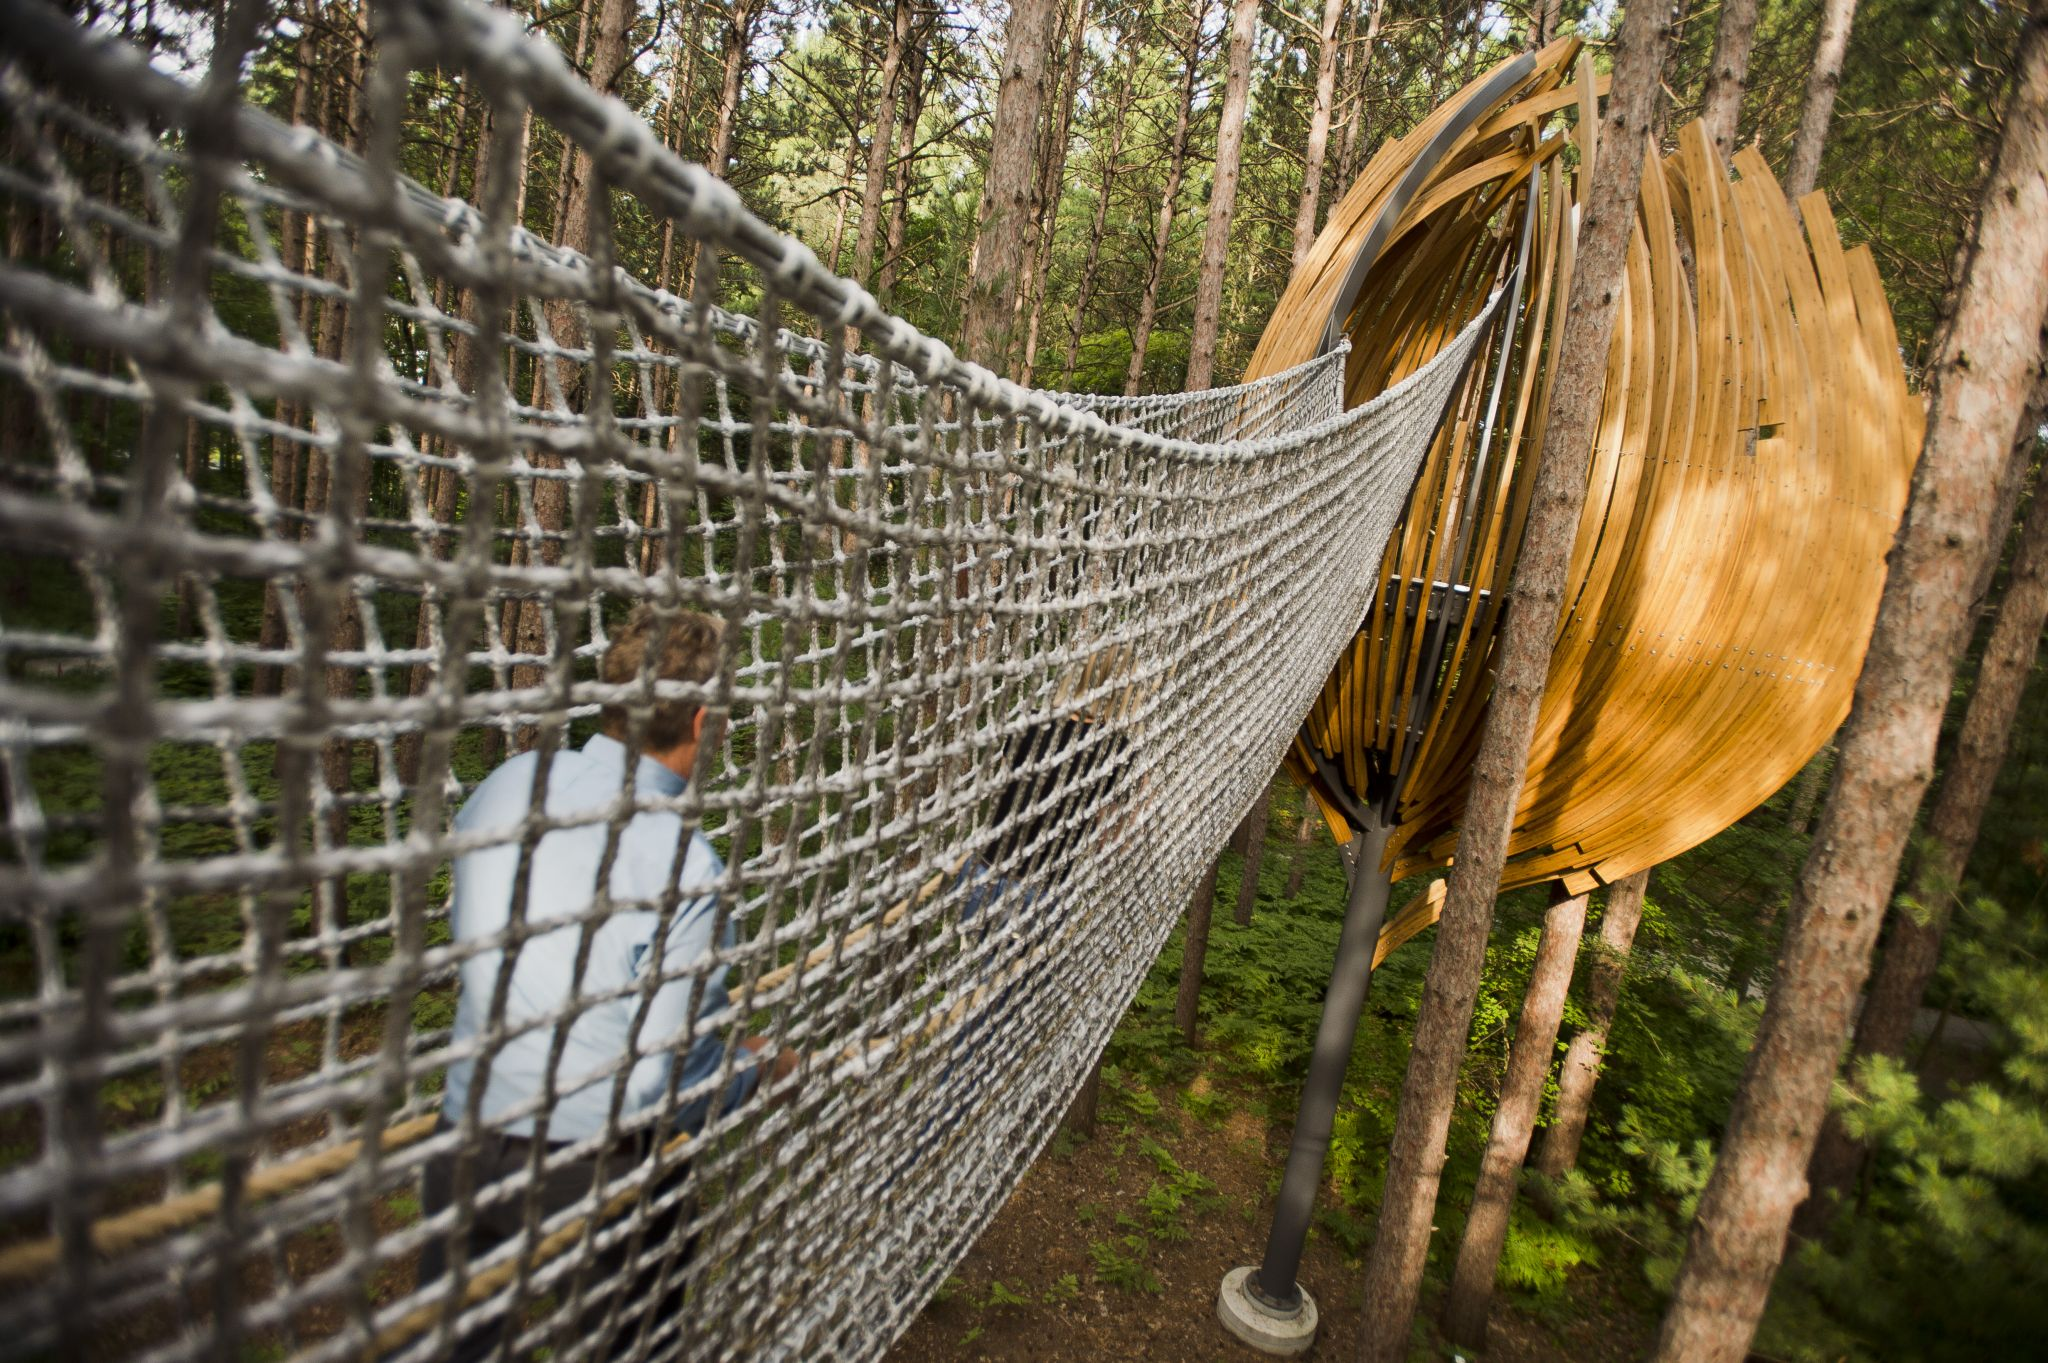 Canopy walk will open first weekend in October - Midland Daily News